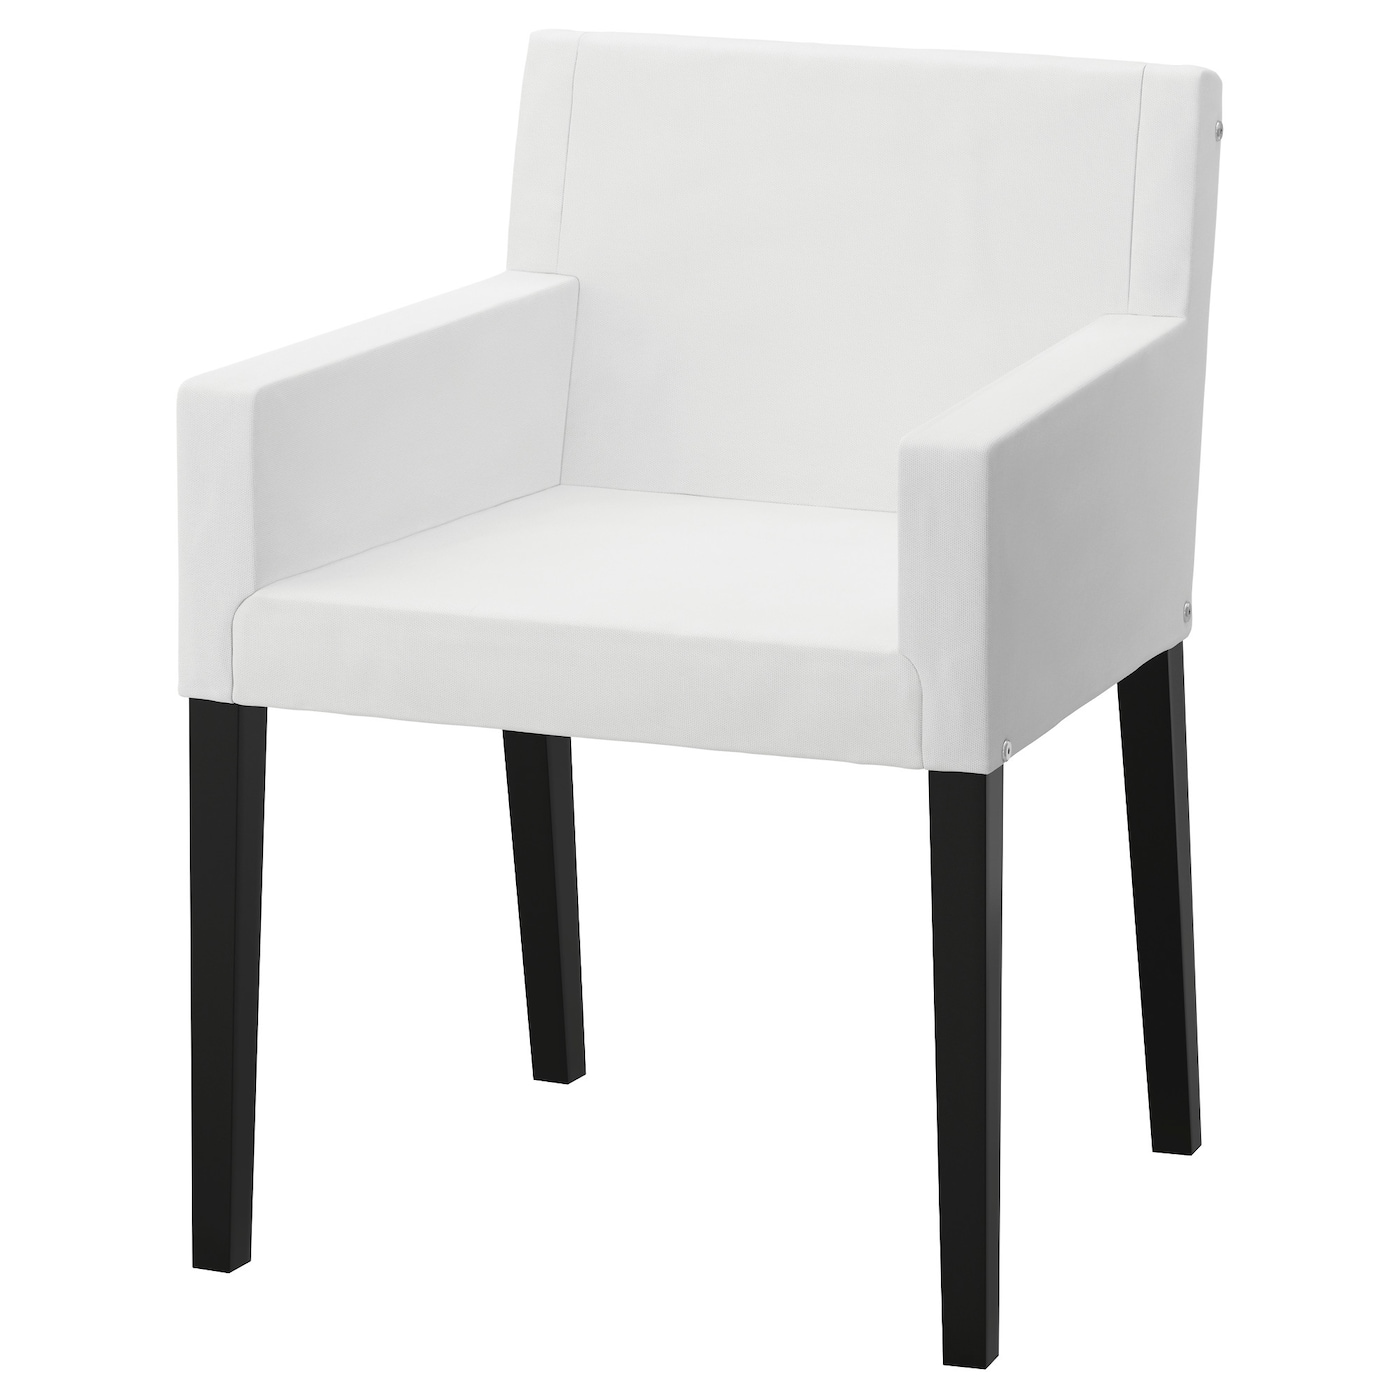 IKEA NILS chair frame with armrests